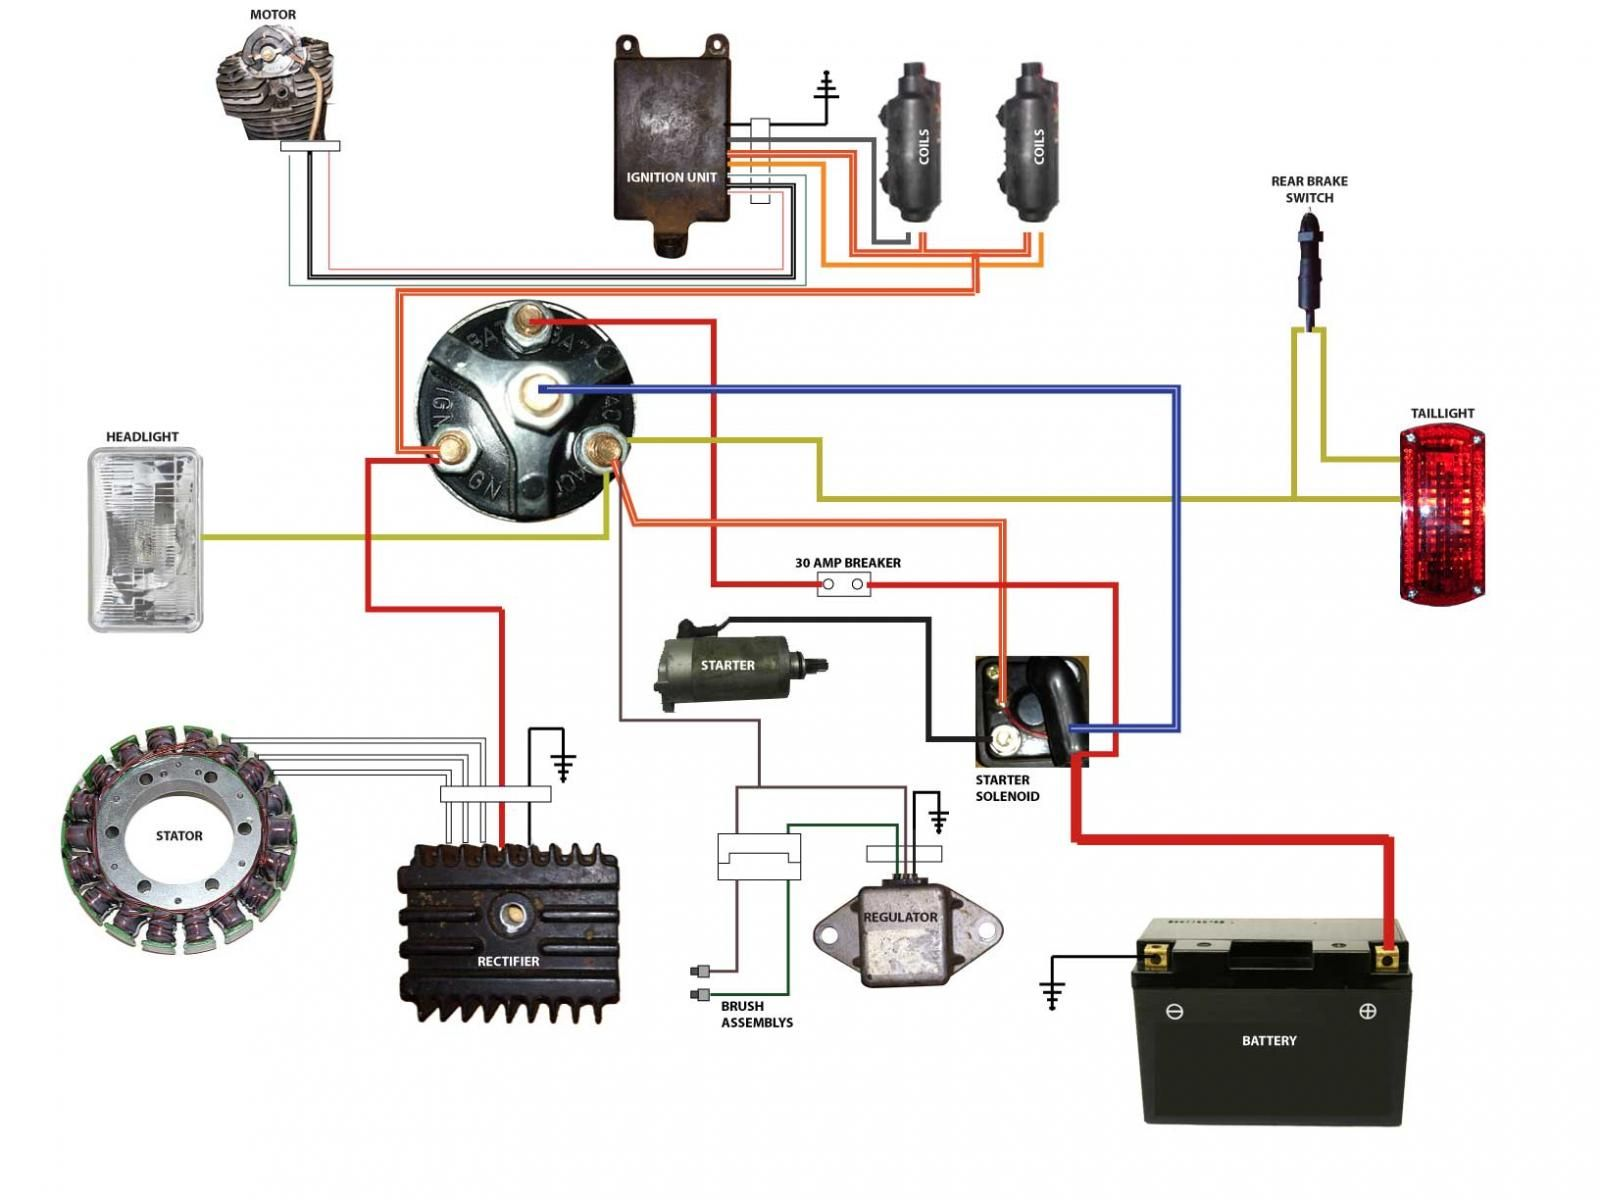 d72b6b9978ded4378b16620a38821410 simplified wiring diagram for xs400 cafe motorcycle wiring XS400 Forum at creativeand.co